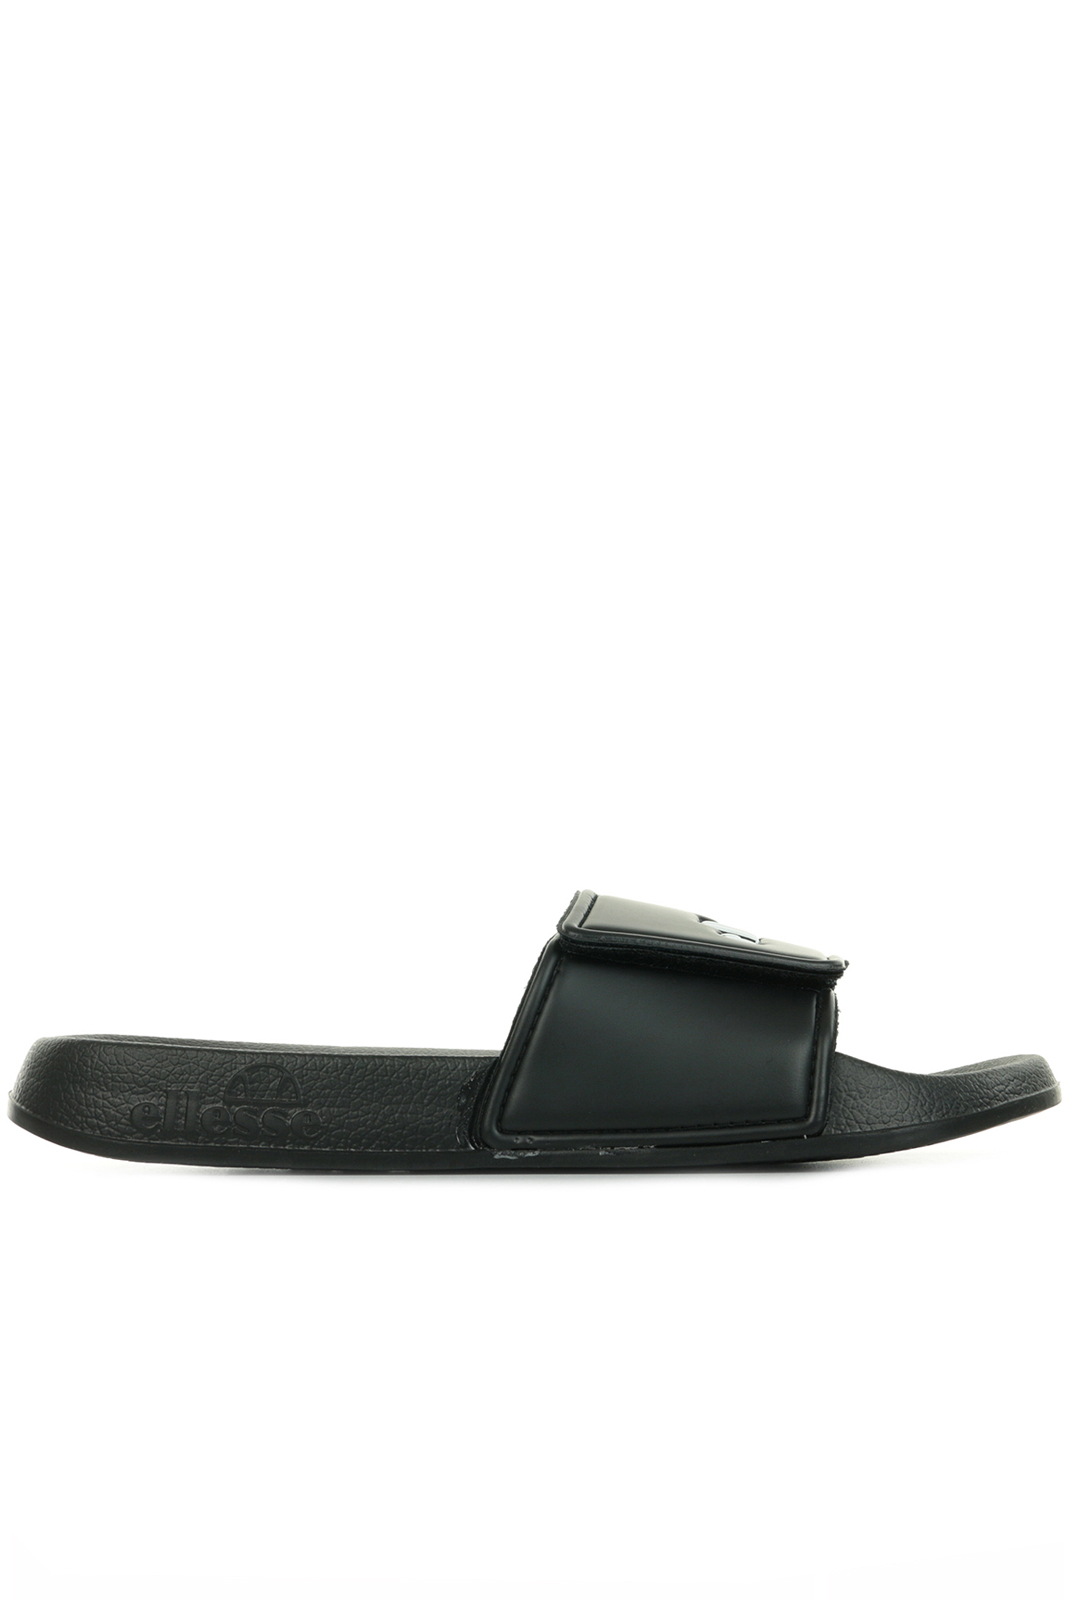 Tongs / Mules  Ellesse GREG W FULL BLACK VELCRO